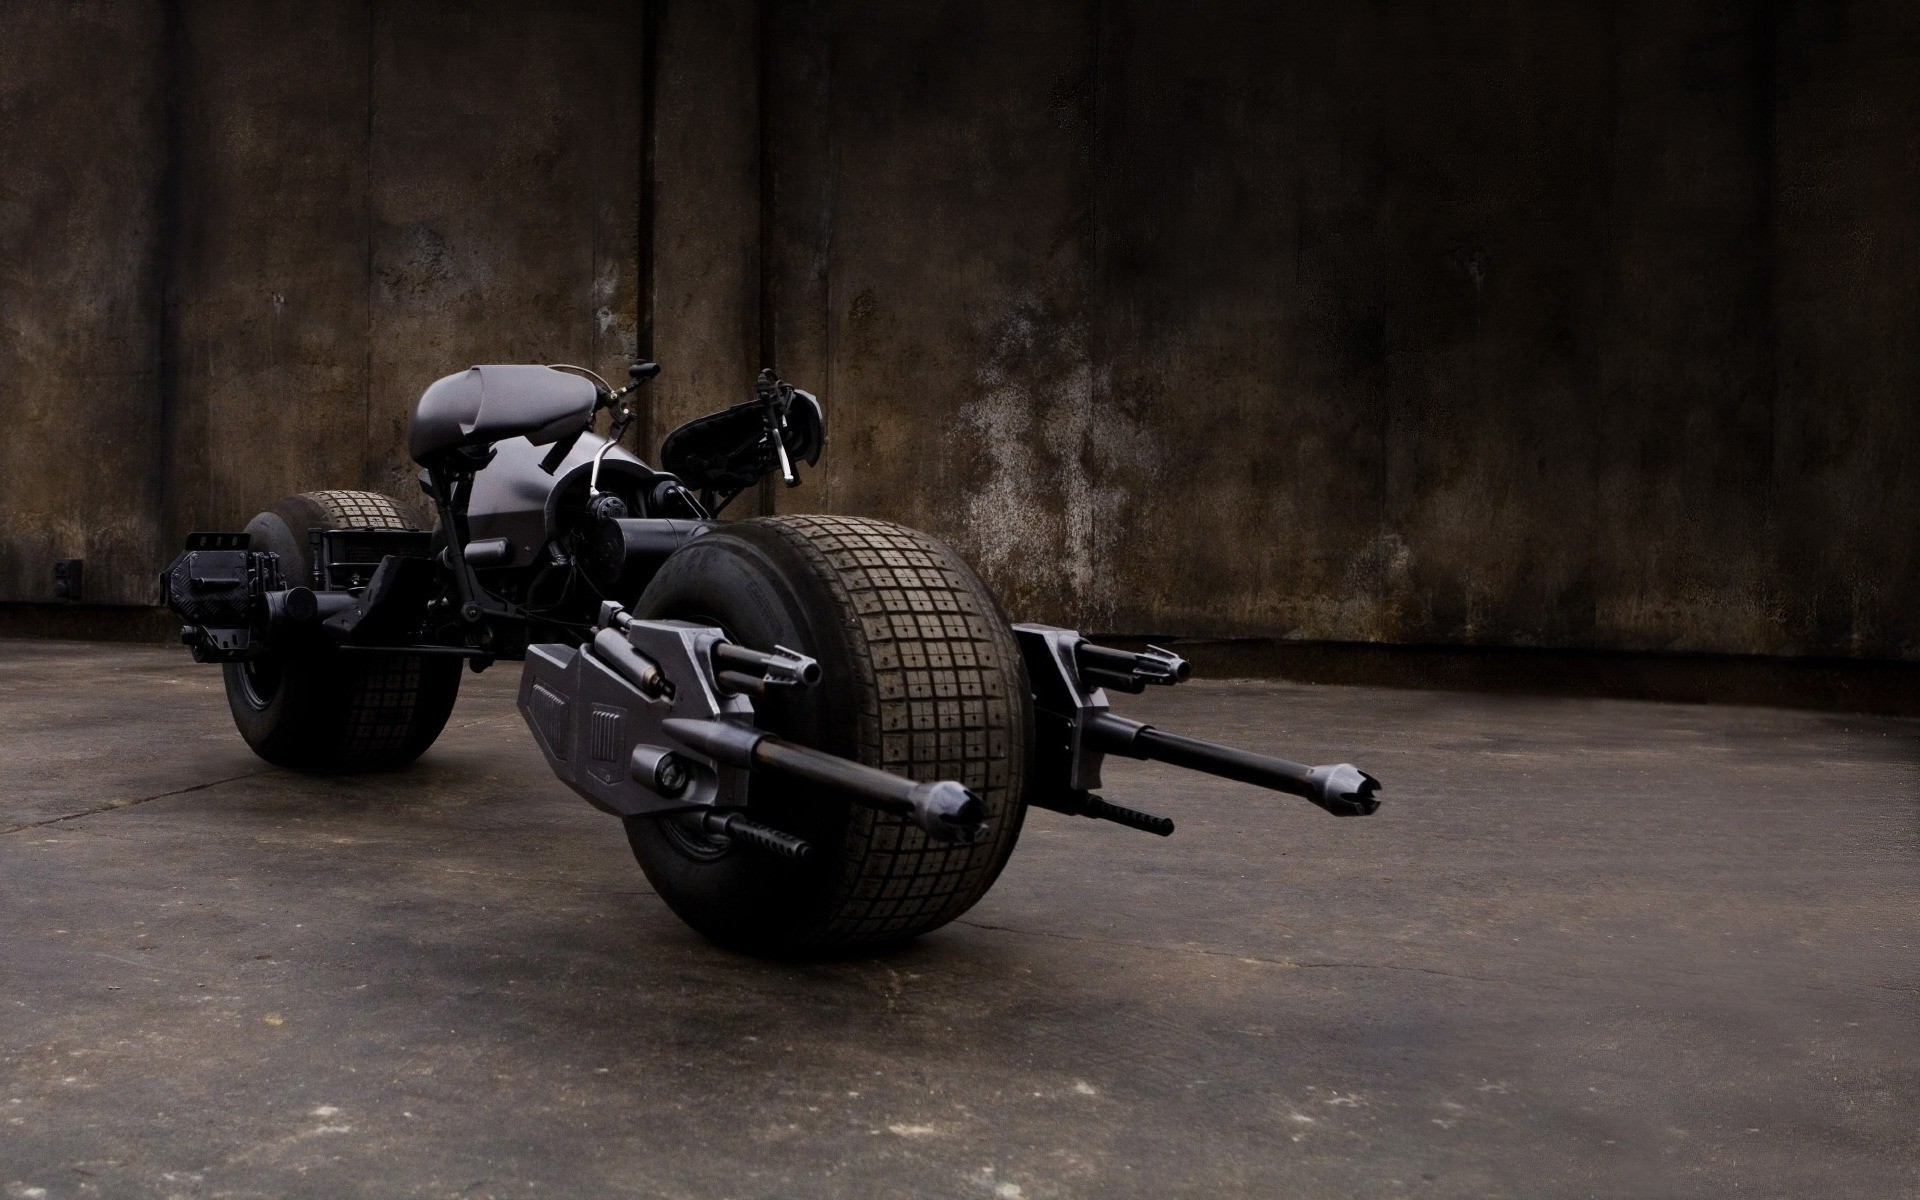 Batman Batpod The Dark Knight Wallpapers HD Desktop and Mobile 1920x1200